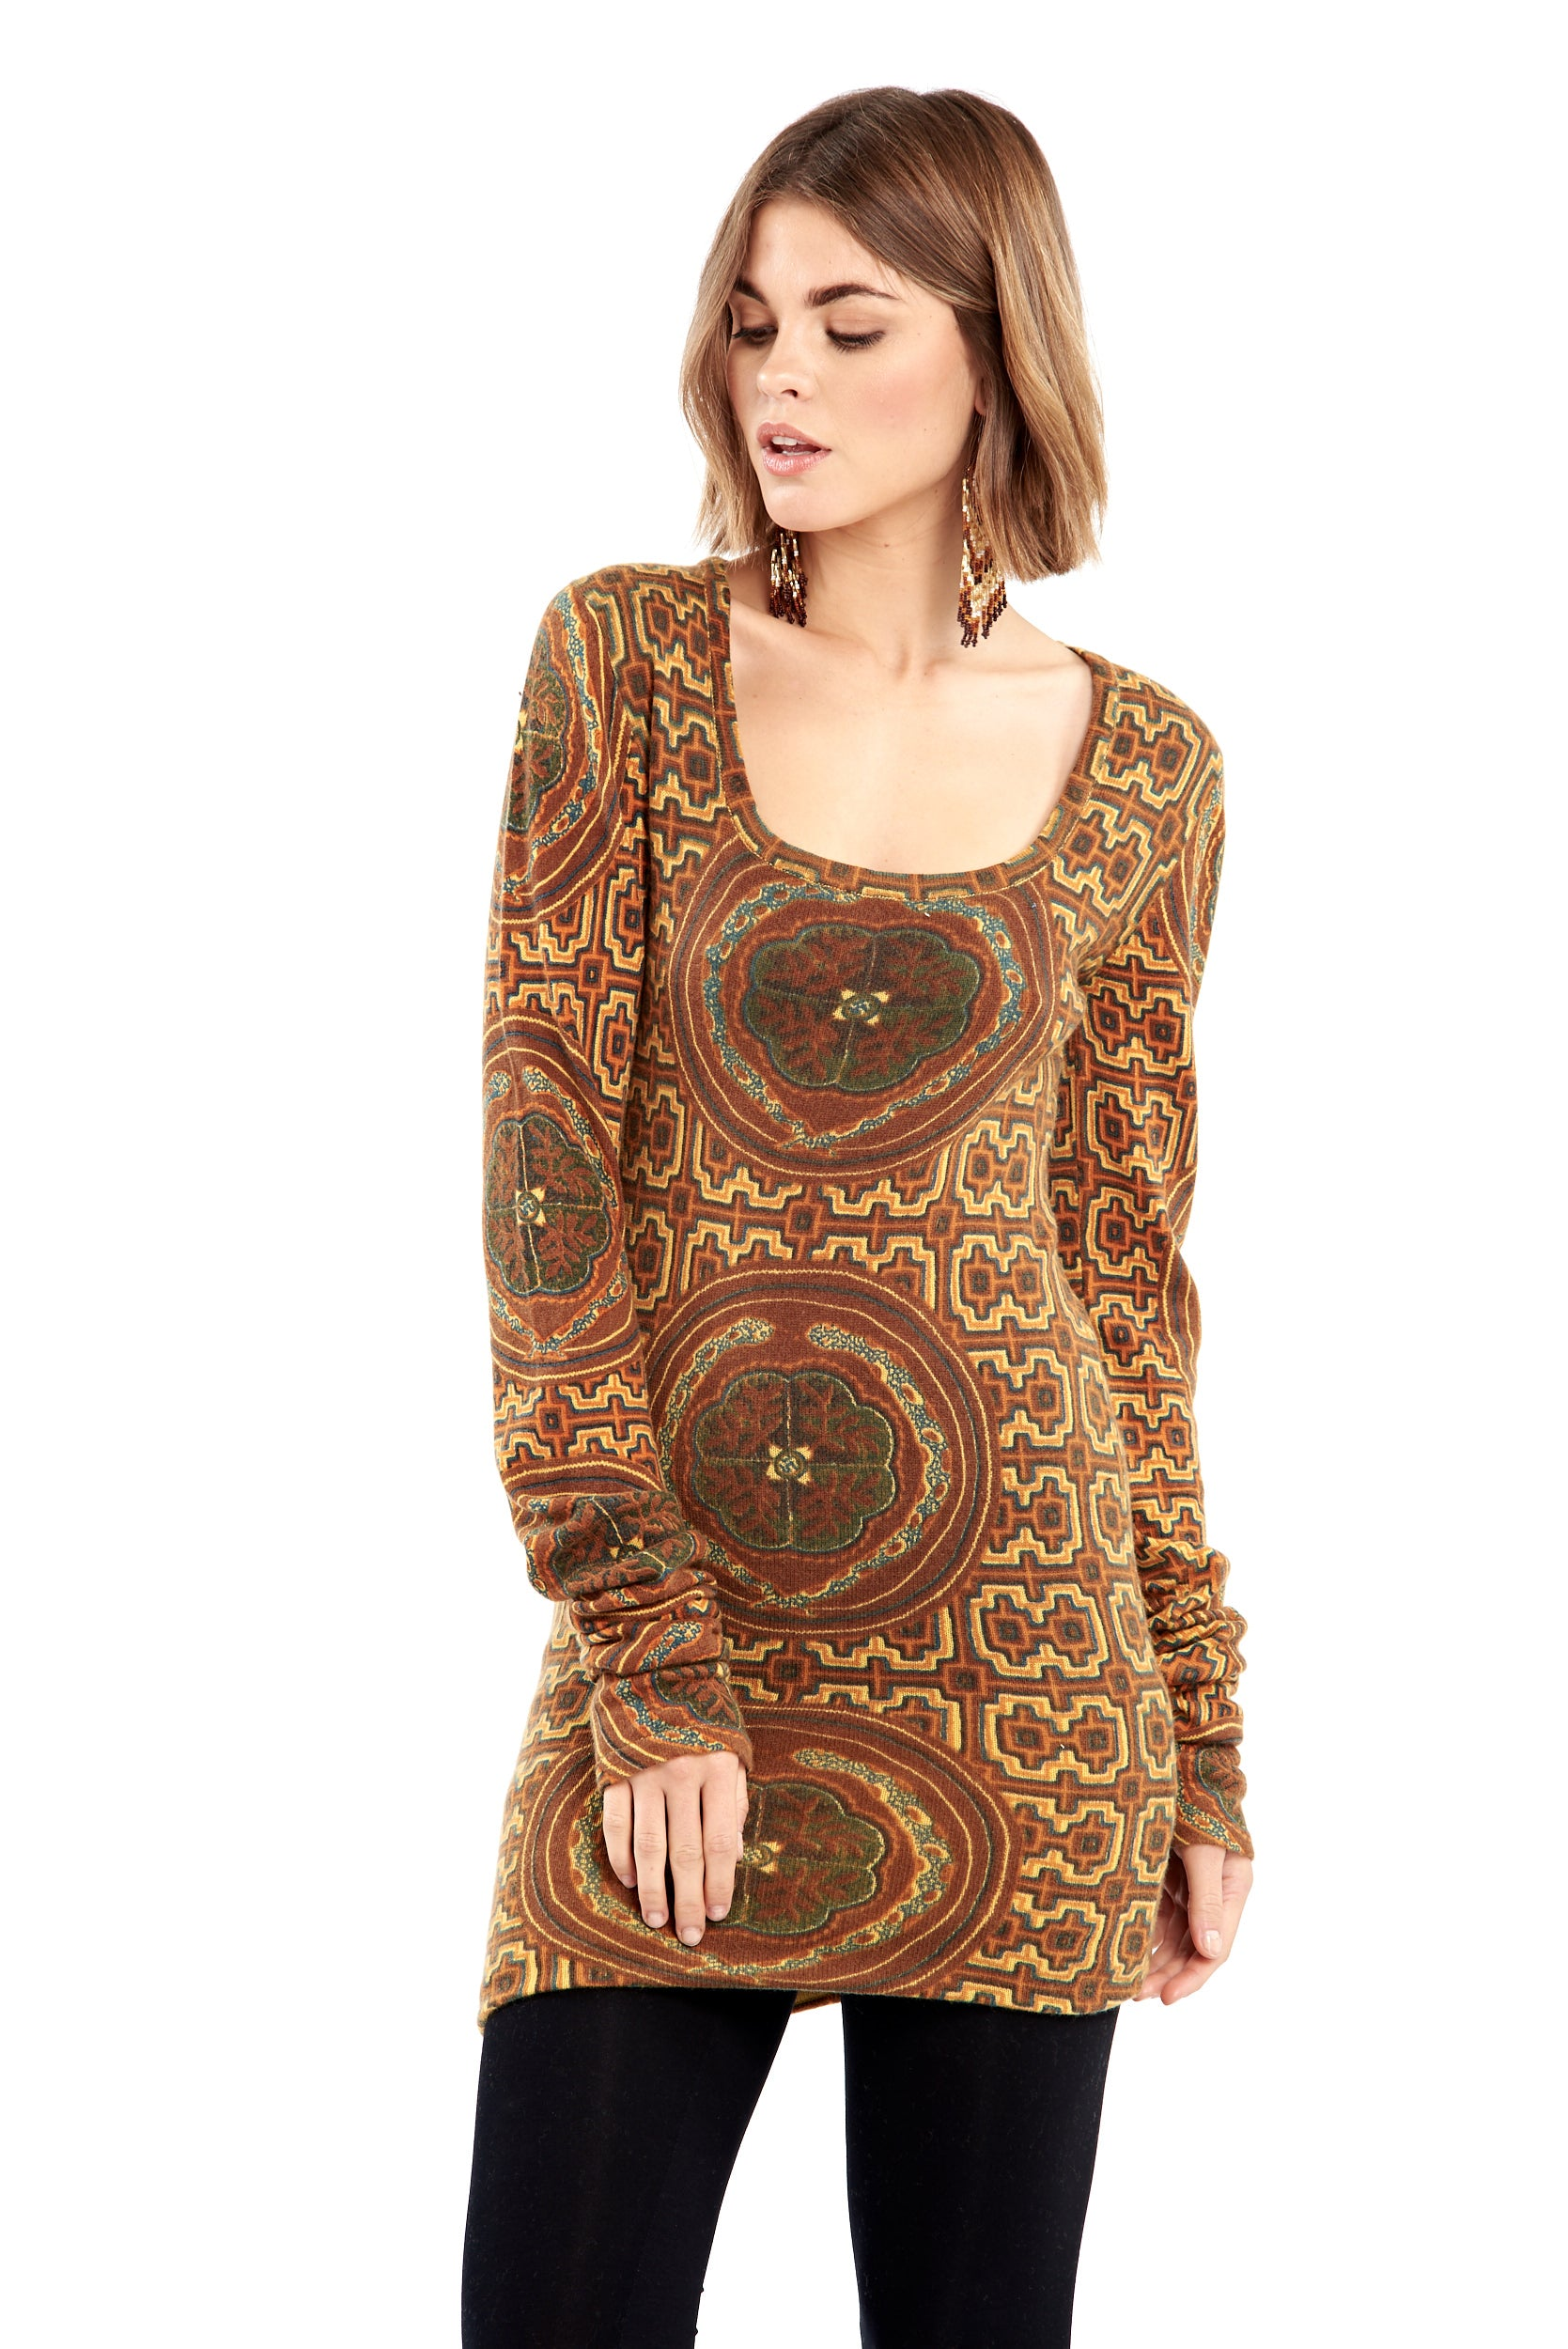 Shipibo Inspired Cashmere Fitted Jumper Dress Yellow/Brown